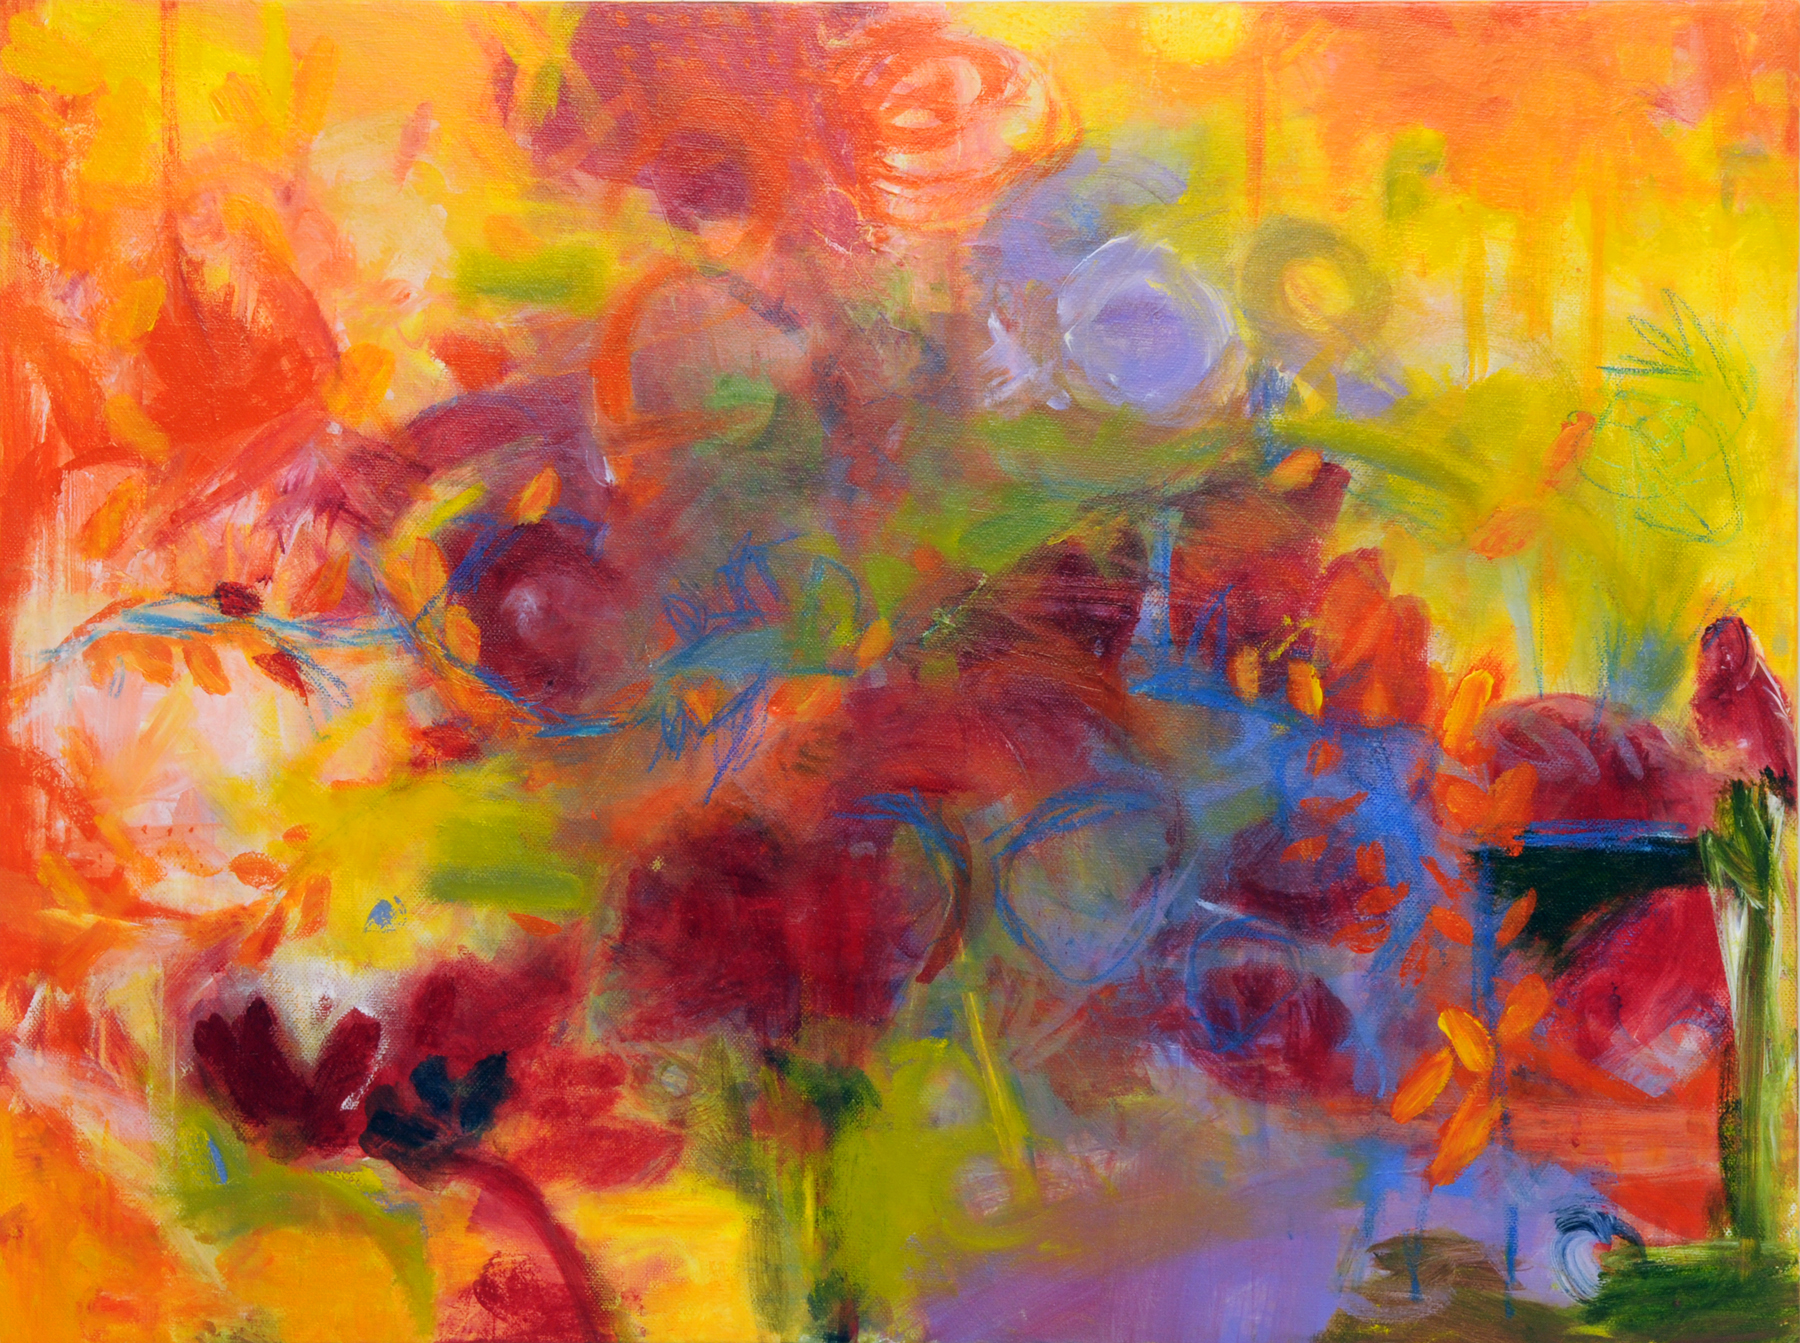 Ruby Tuesday by Marla Sullivan | ArtworkNetwork.com